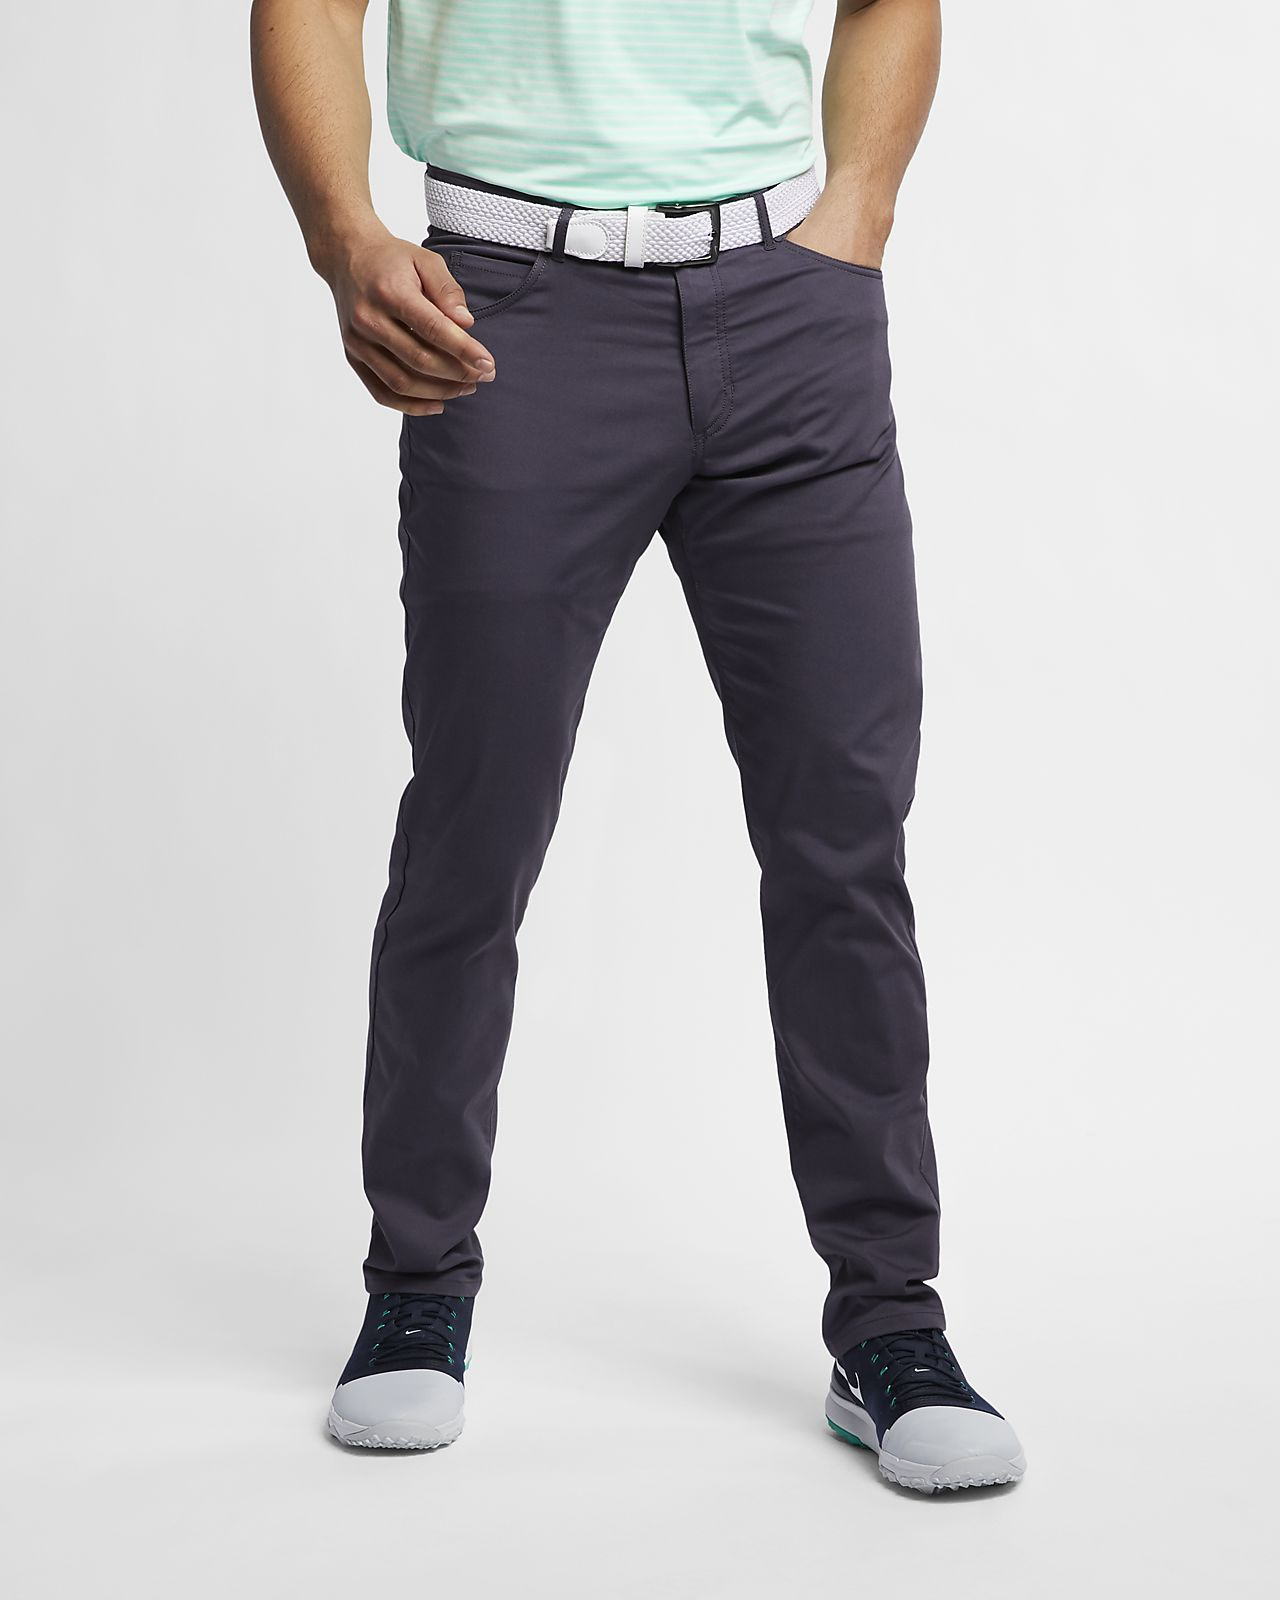 Nike Flex 5 Pocket Herren Golfhose in schmaler Passform